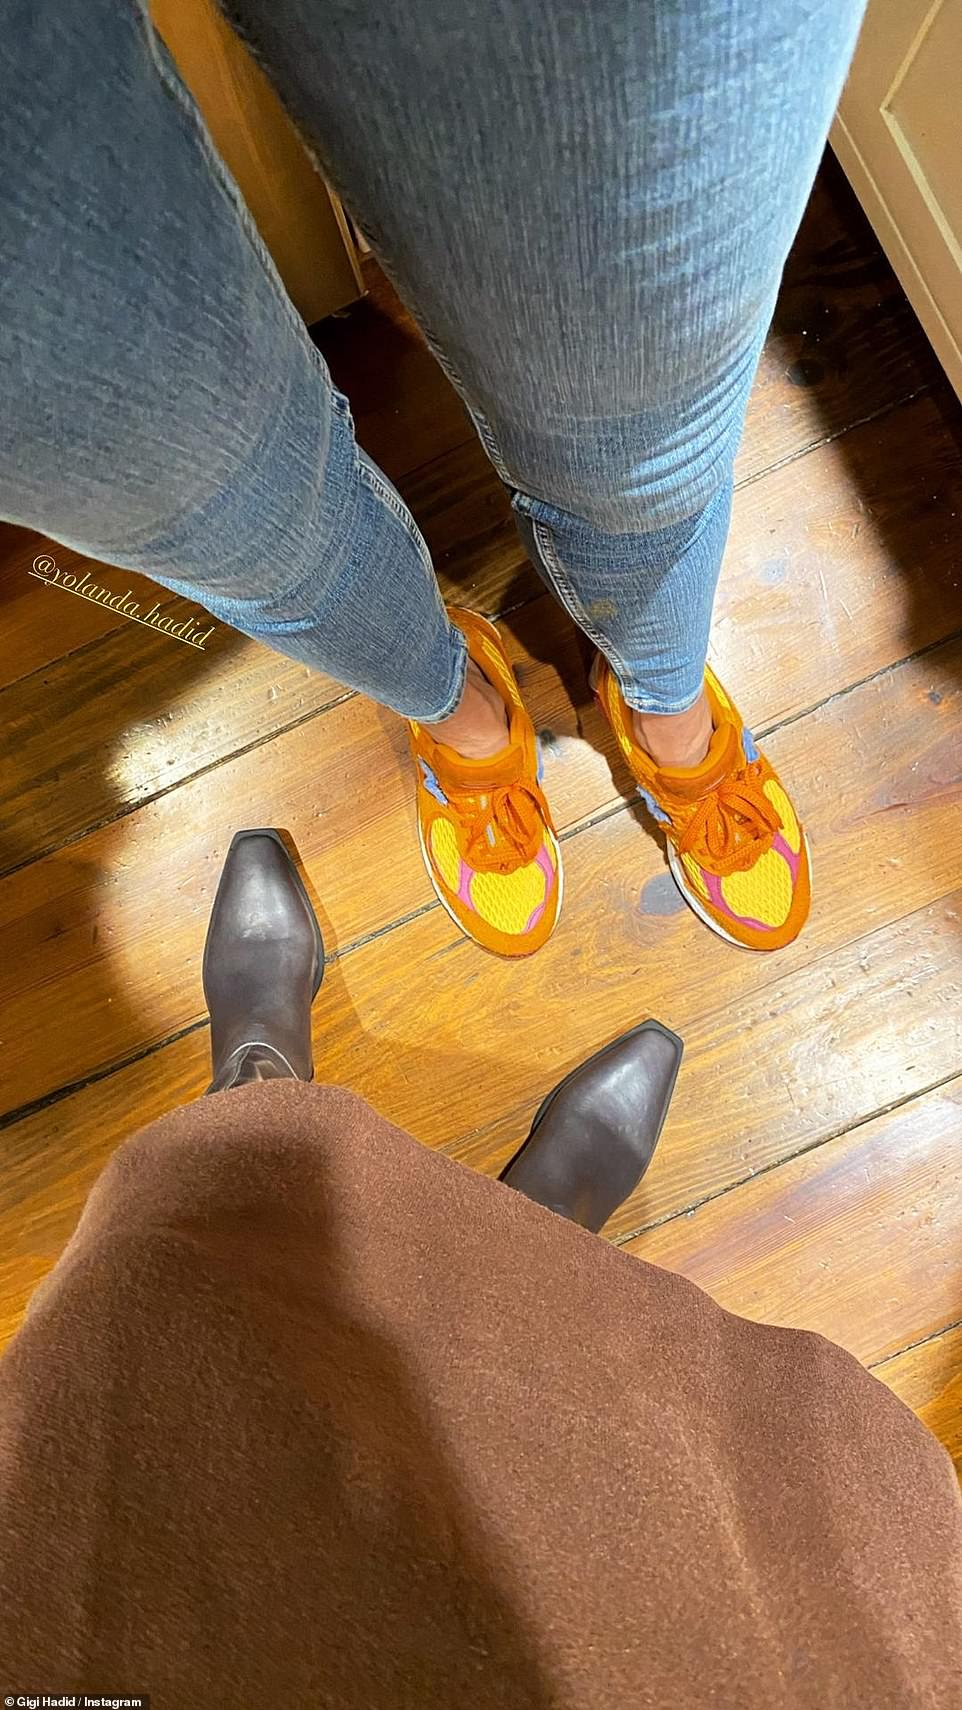 Bonding: Gigi Hadid took to Instagram to post her and her mom Yolanda Hadid's shoes